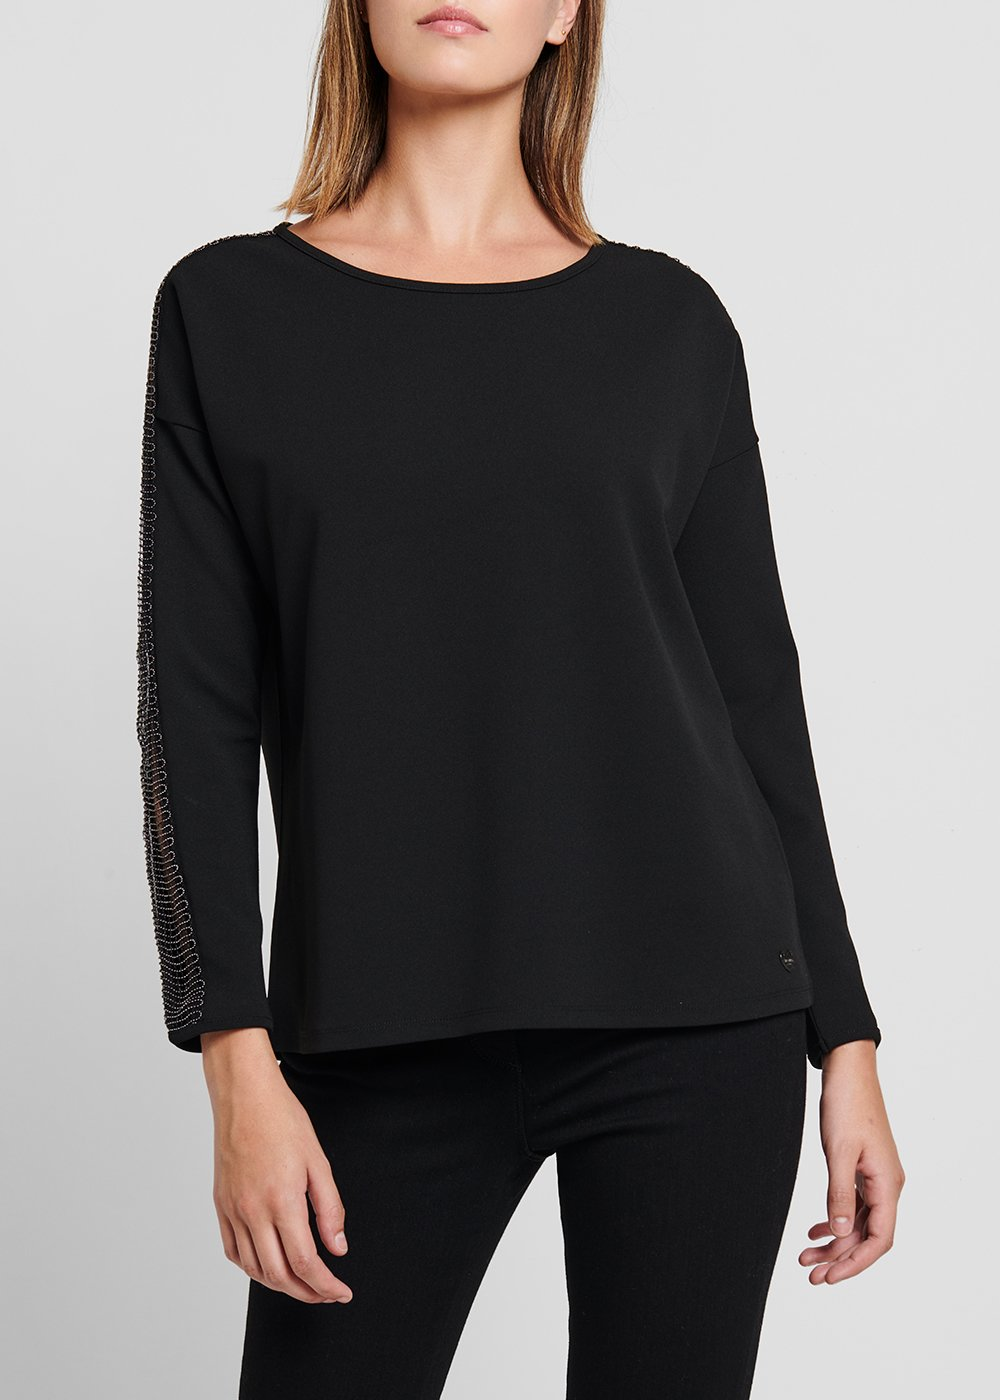 T-shirt in crêpe with boat neck - Black - Woman